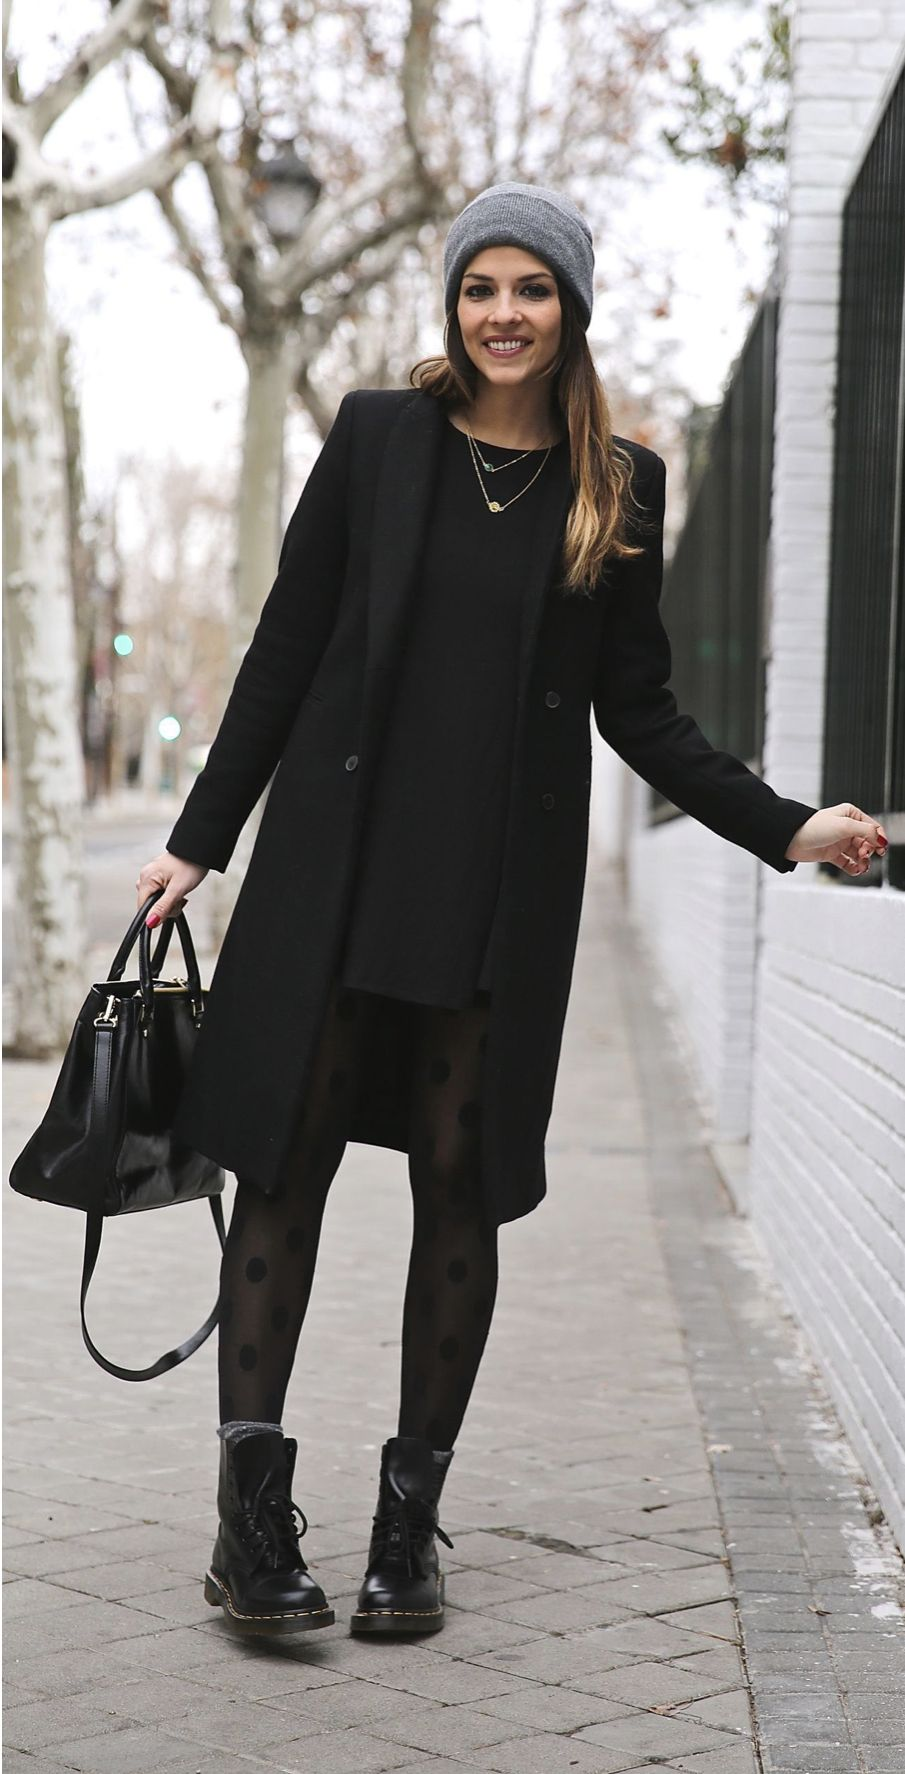 black long coat for women Autumn & winter #autumnwardrobe